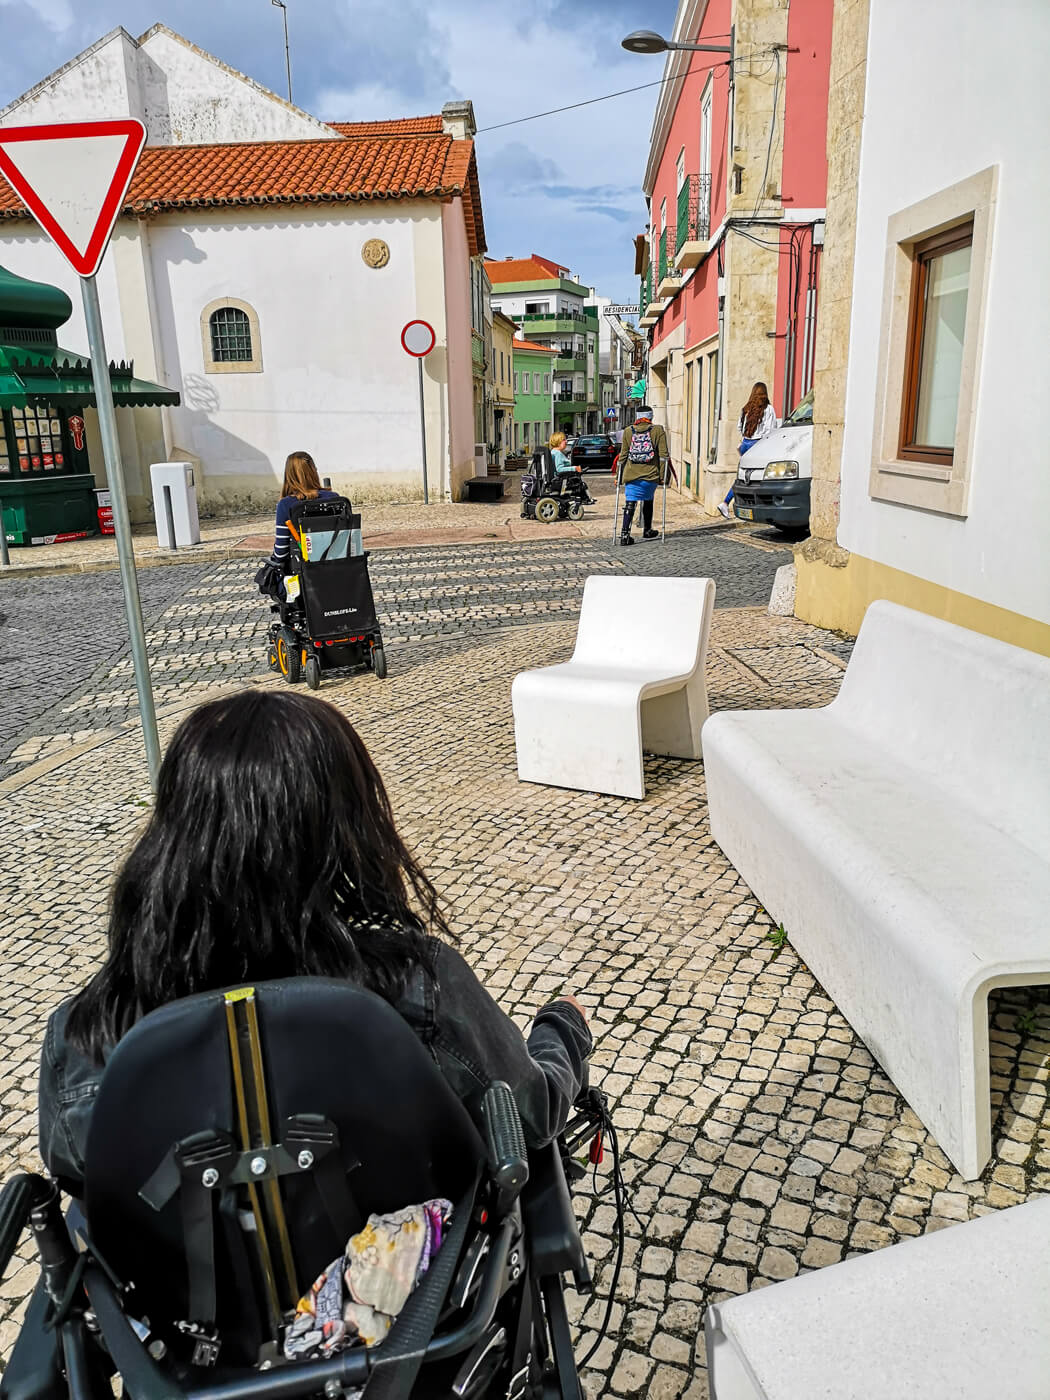 A view of Emma from the back. She is driving her wheelchair across cobblestones in the town of Caldas da Rainha. In front of Emma is two wheelchair users and a woman walking with crutches. They are also part of the tour group